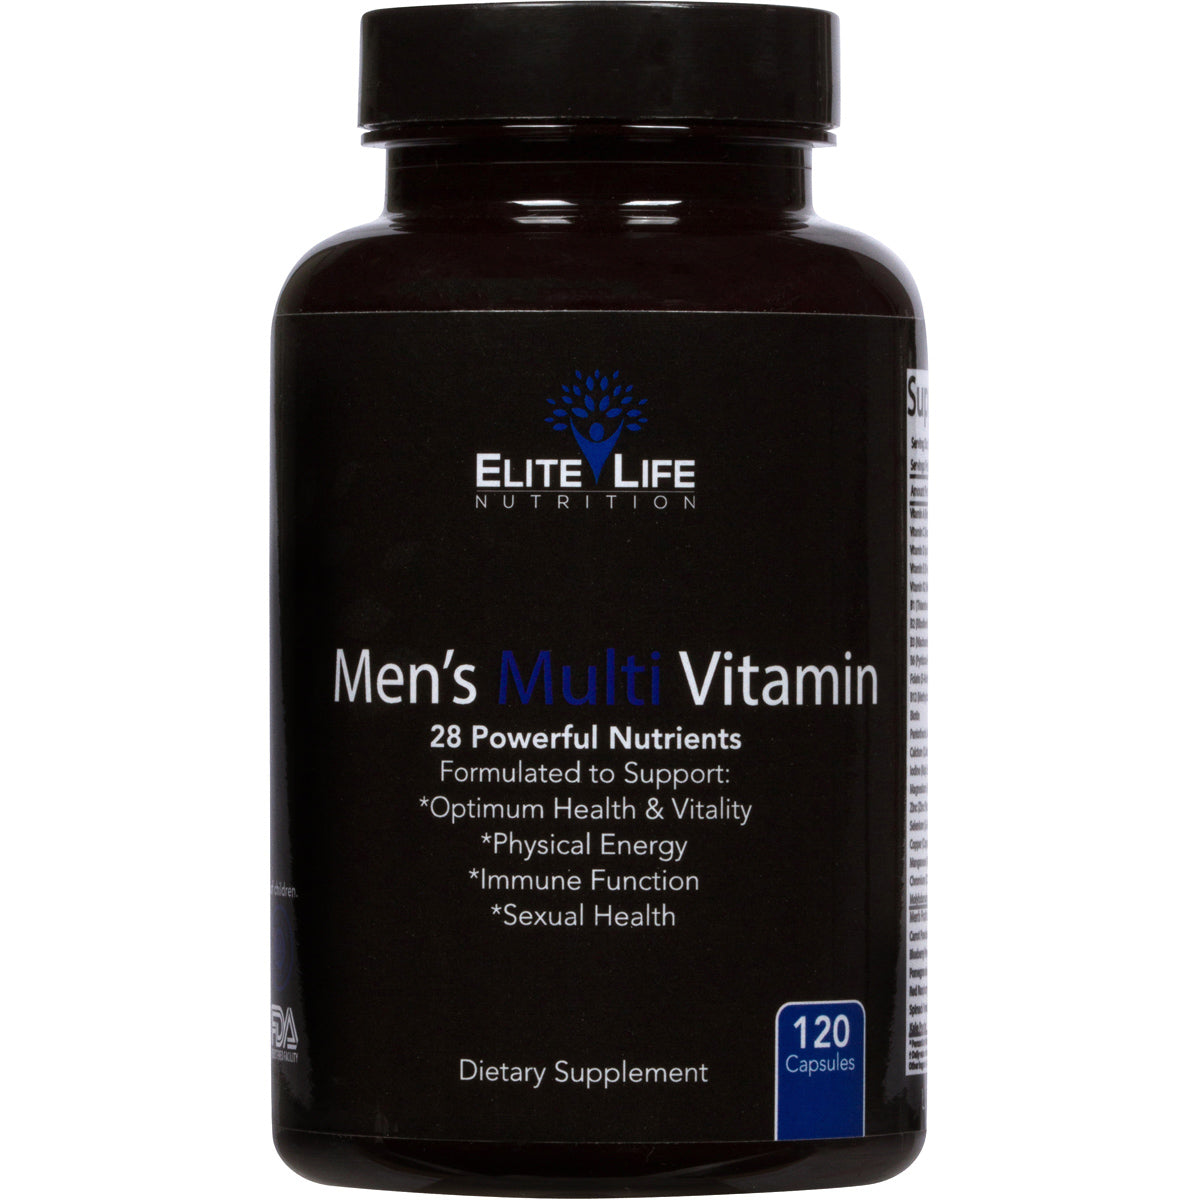 Men's Multi Vitamin - 28 Powerful Nutrients, Vitamins, and Minerals